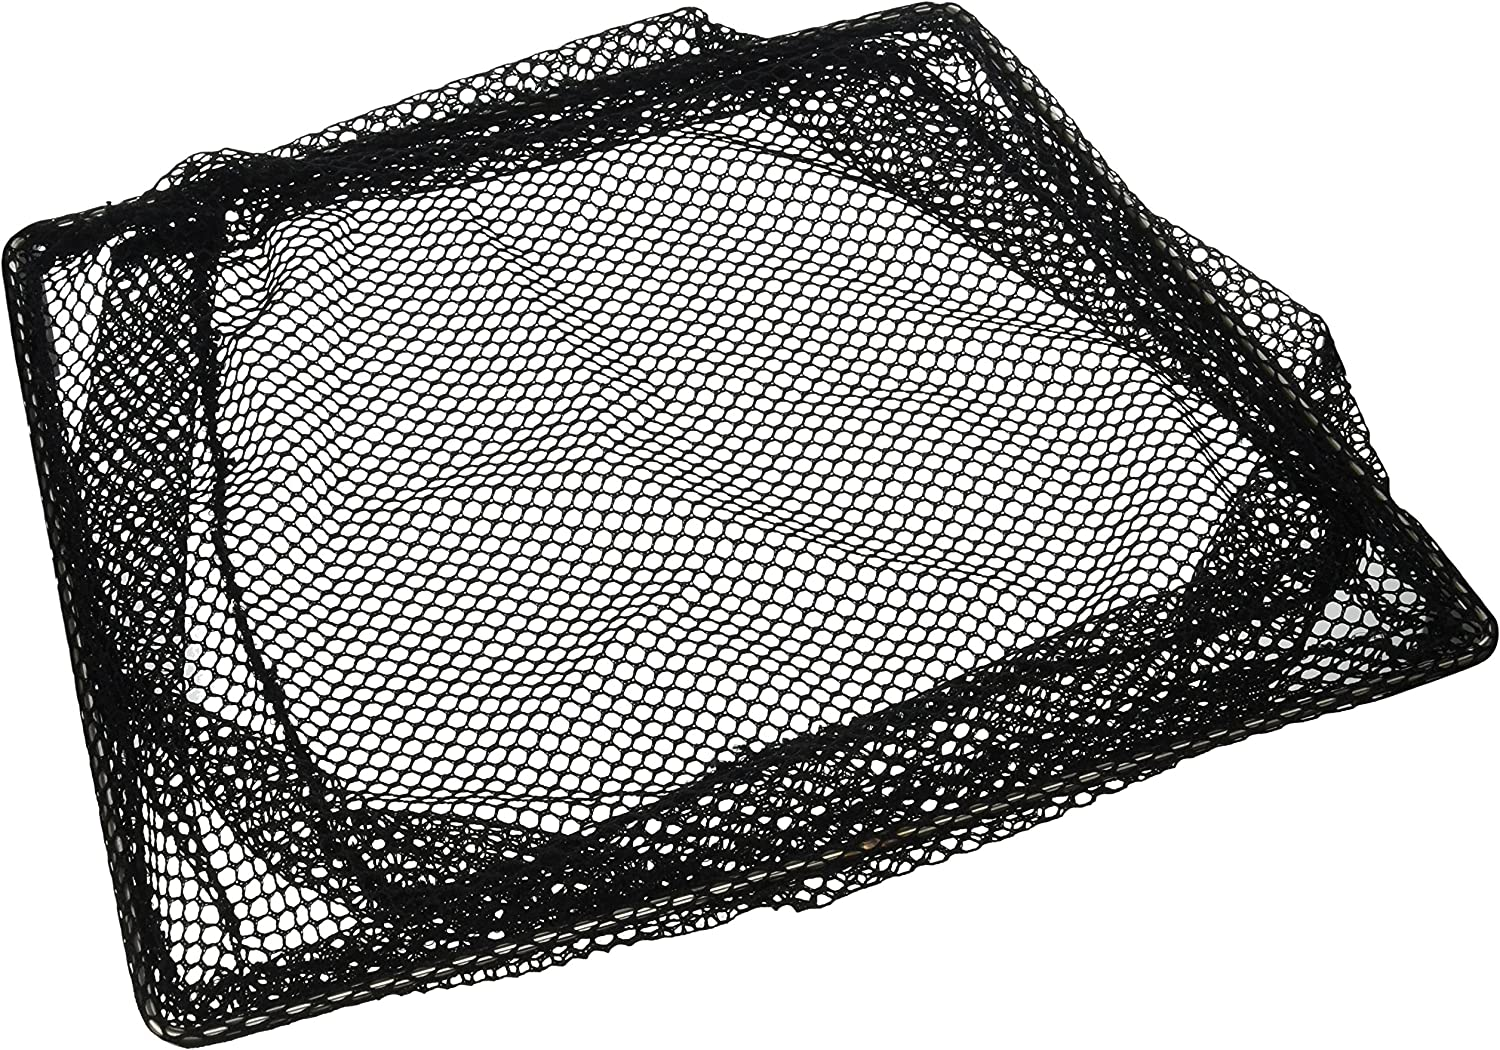 Aquascape Signature Series MicroSkim Debris Net 99775